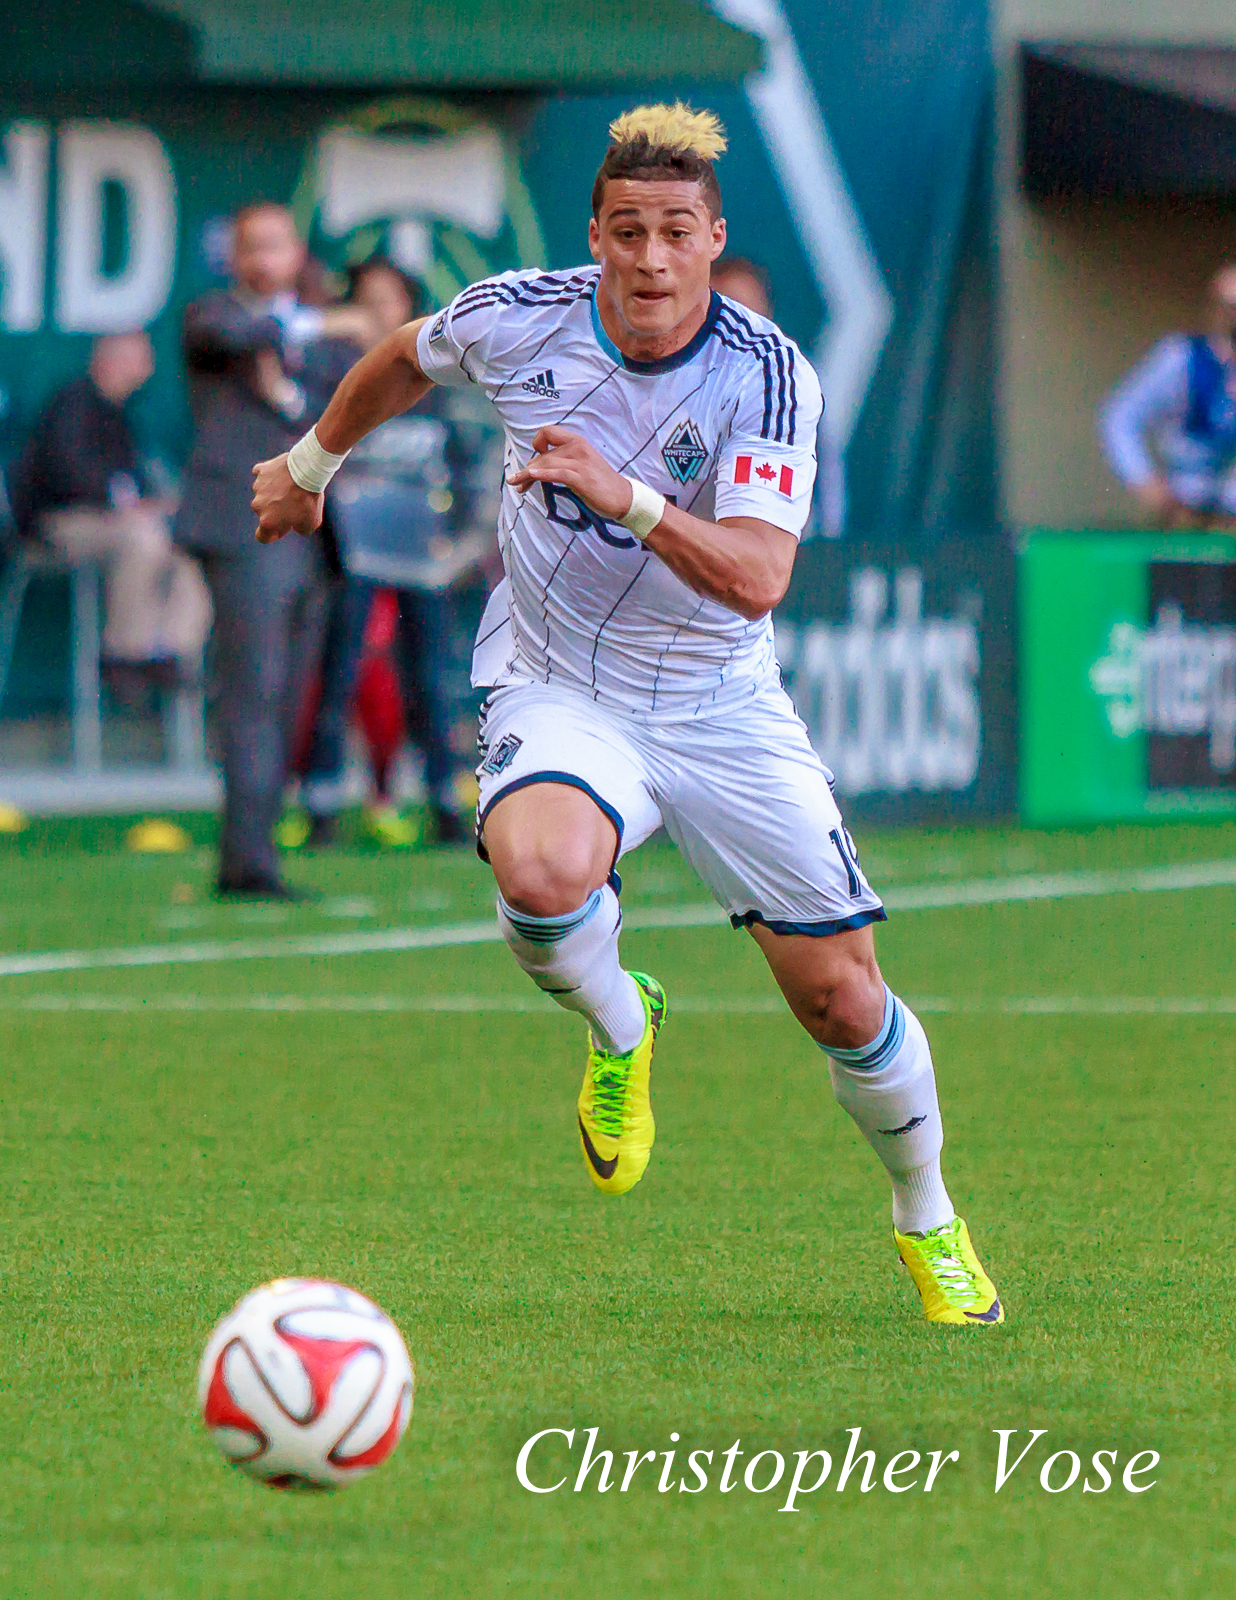 Erik Hurtado scored his fourth goal in four matches. Will he make it five for five against the Union?